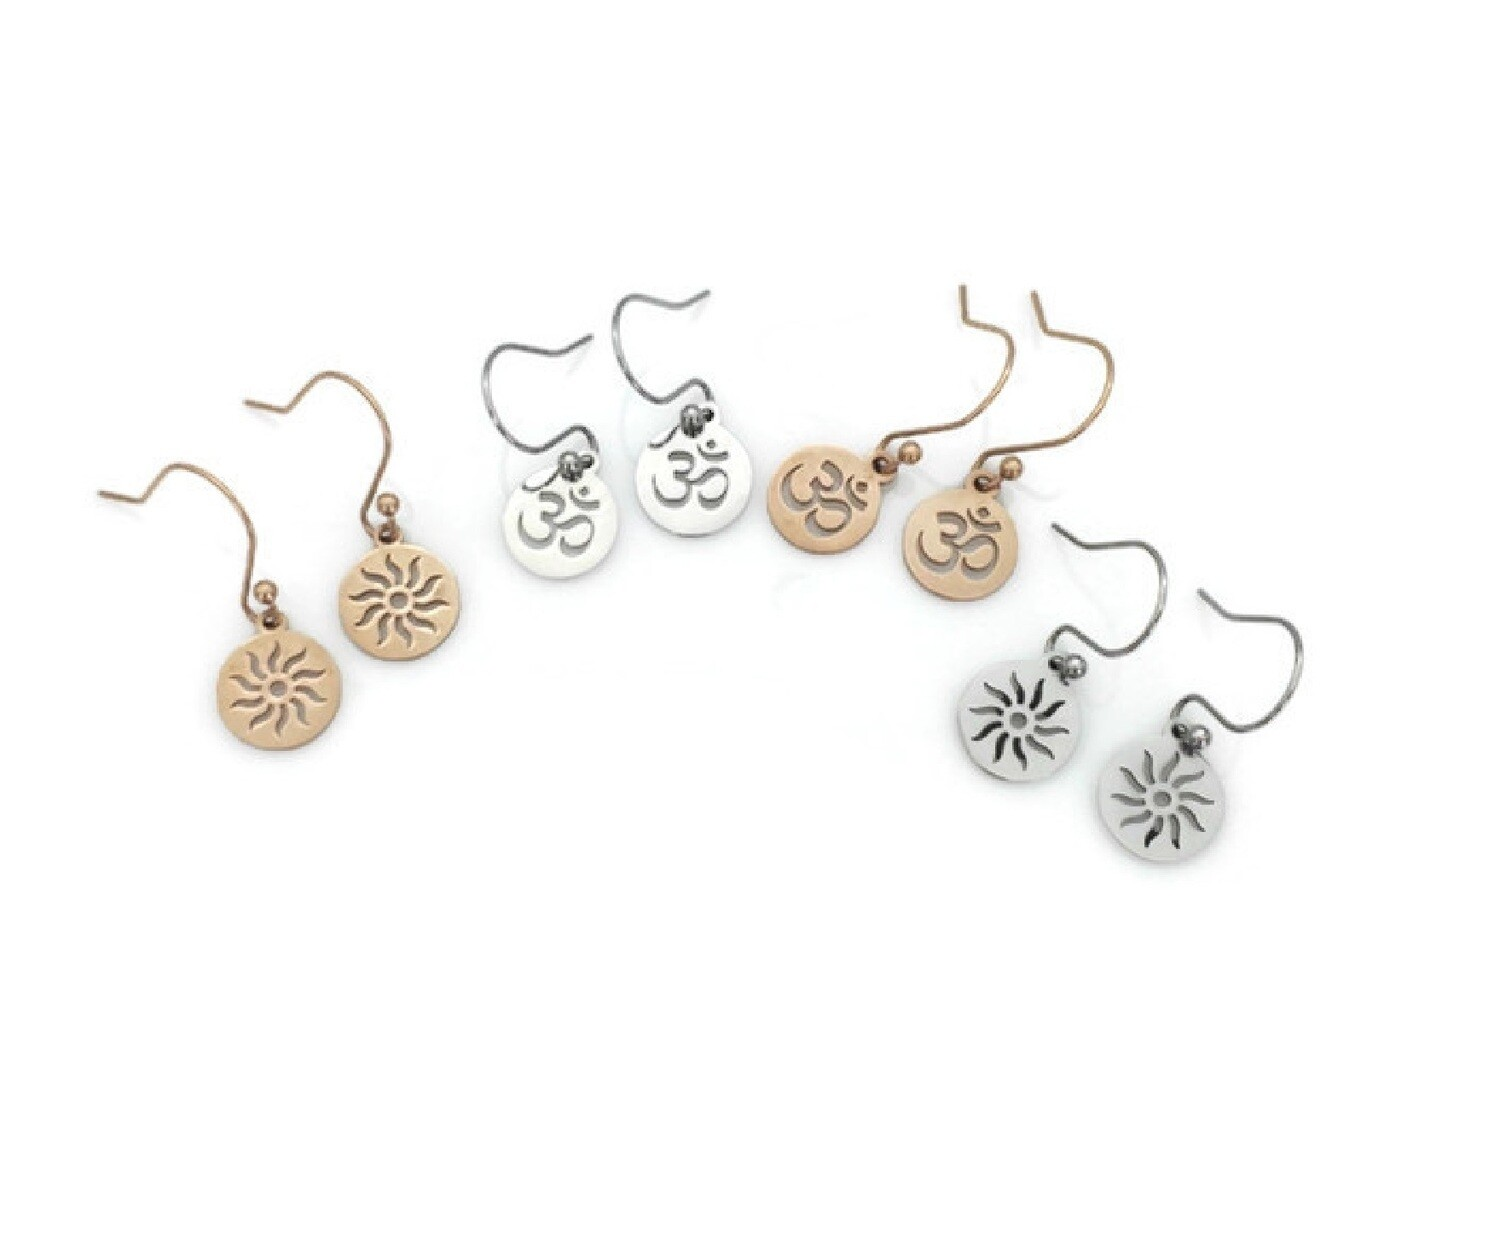 Om and Sun Earrings with Interchangeable Pendants